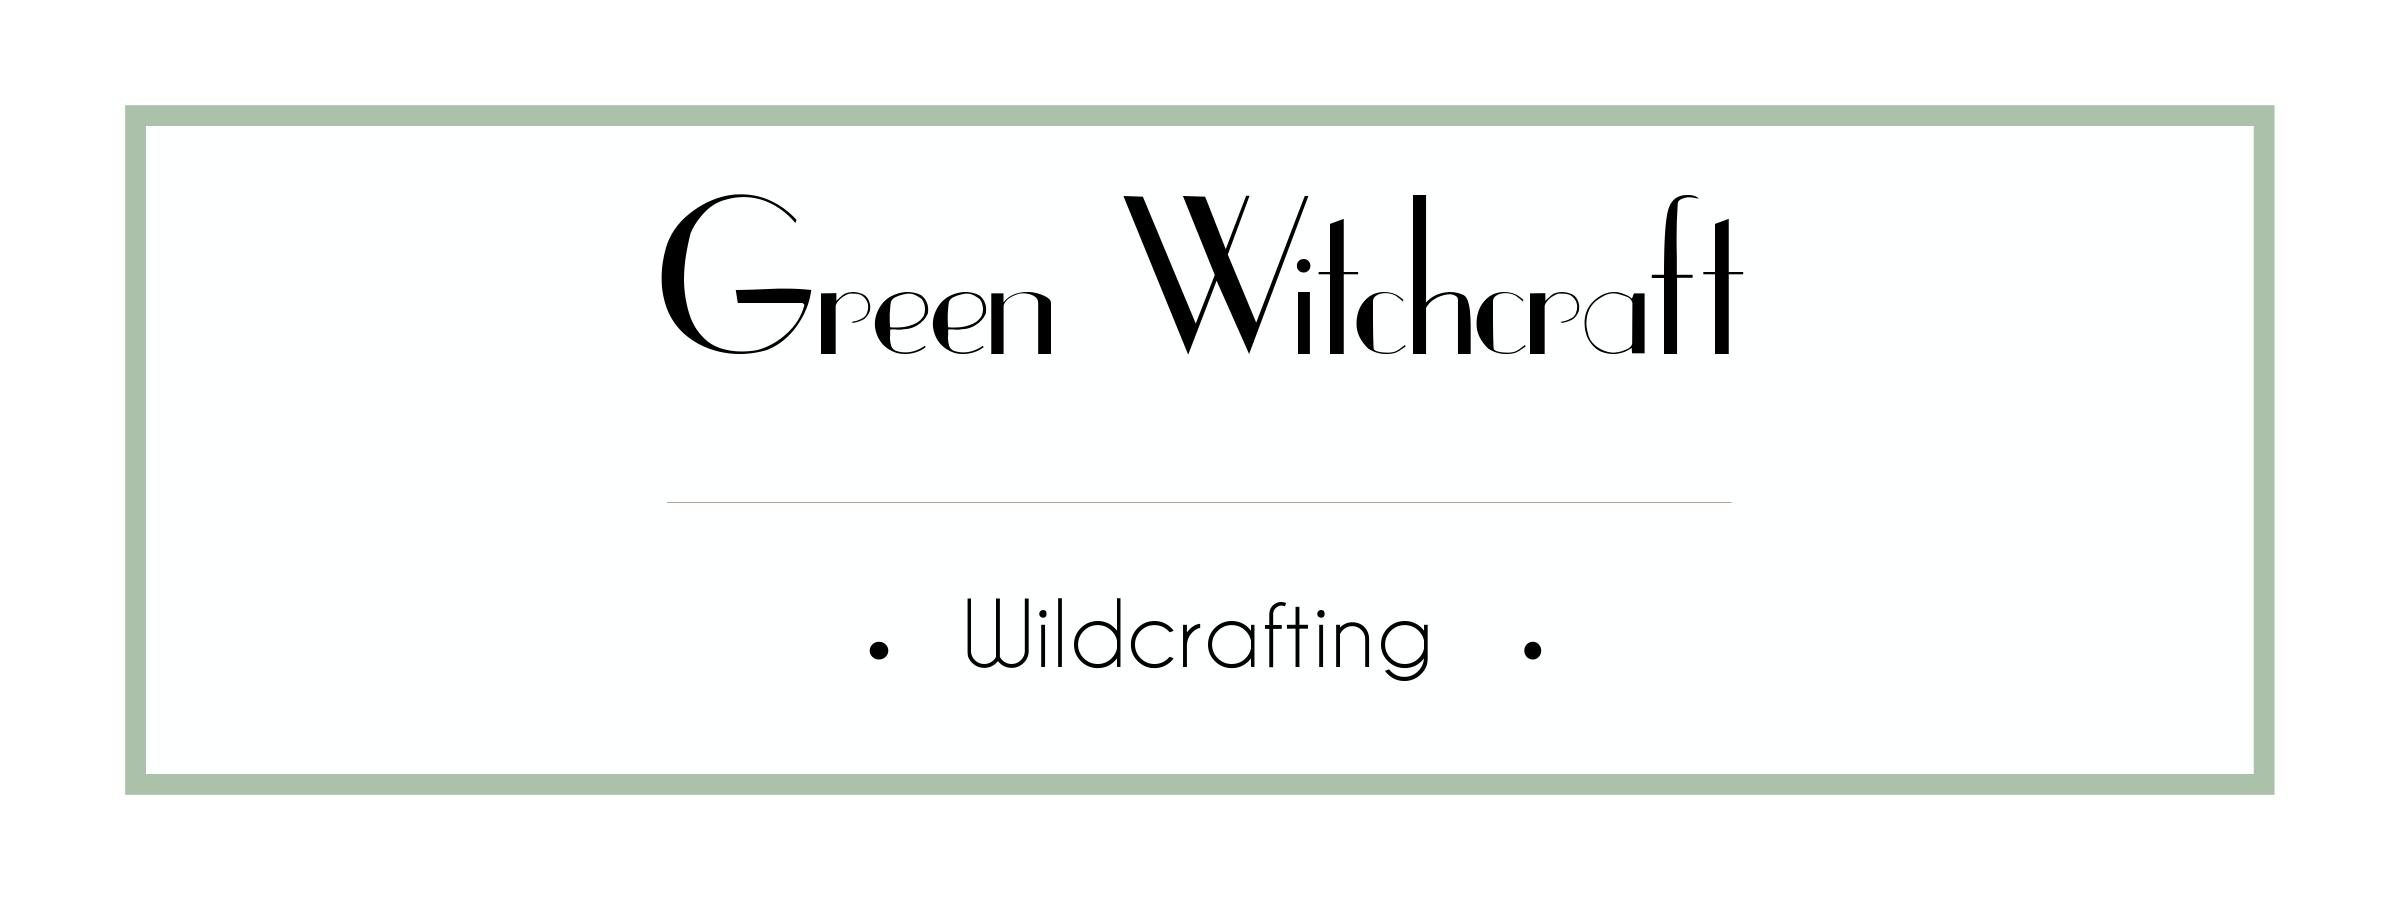 Green Witchcraft Course - Wildcrafting